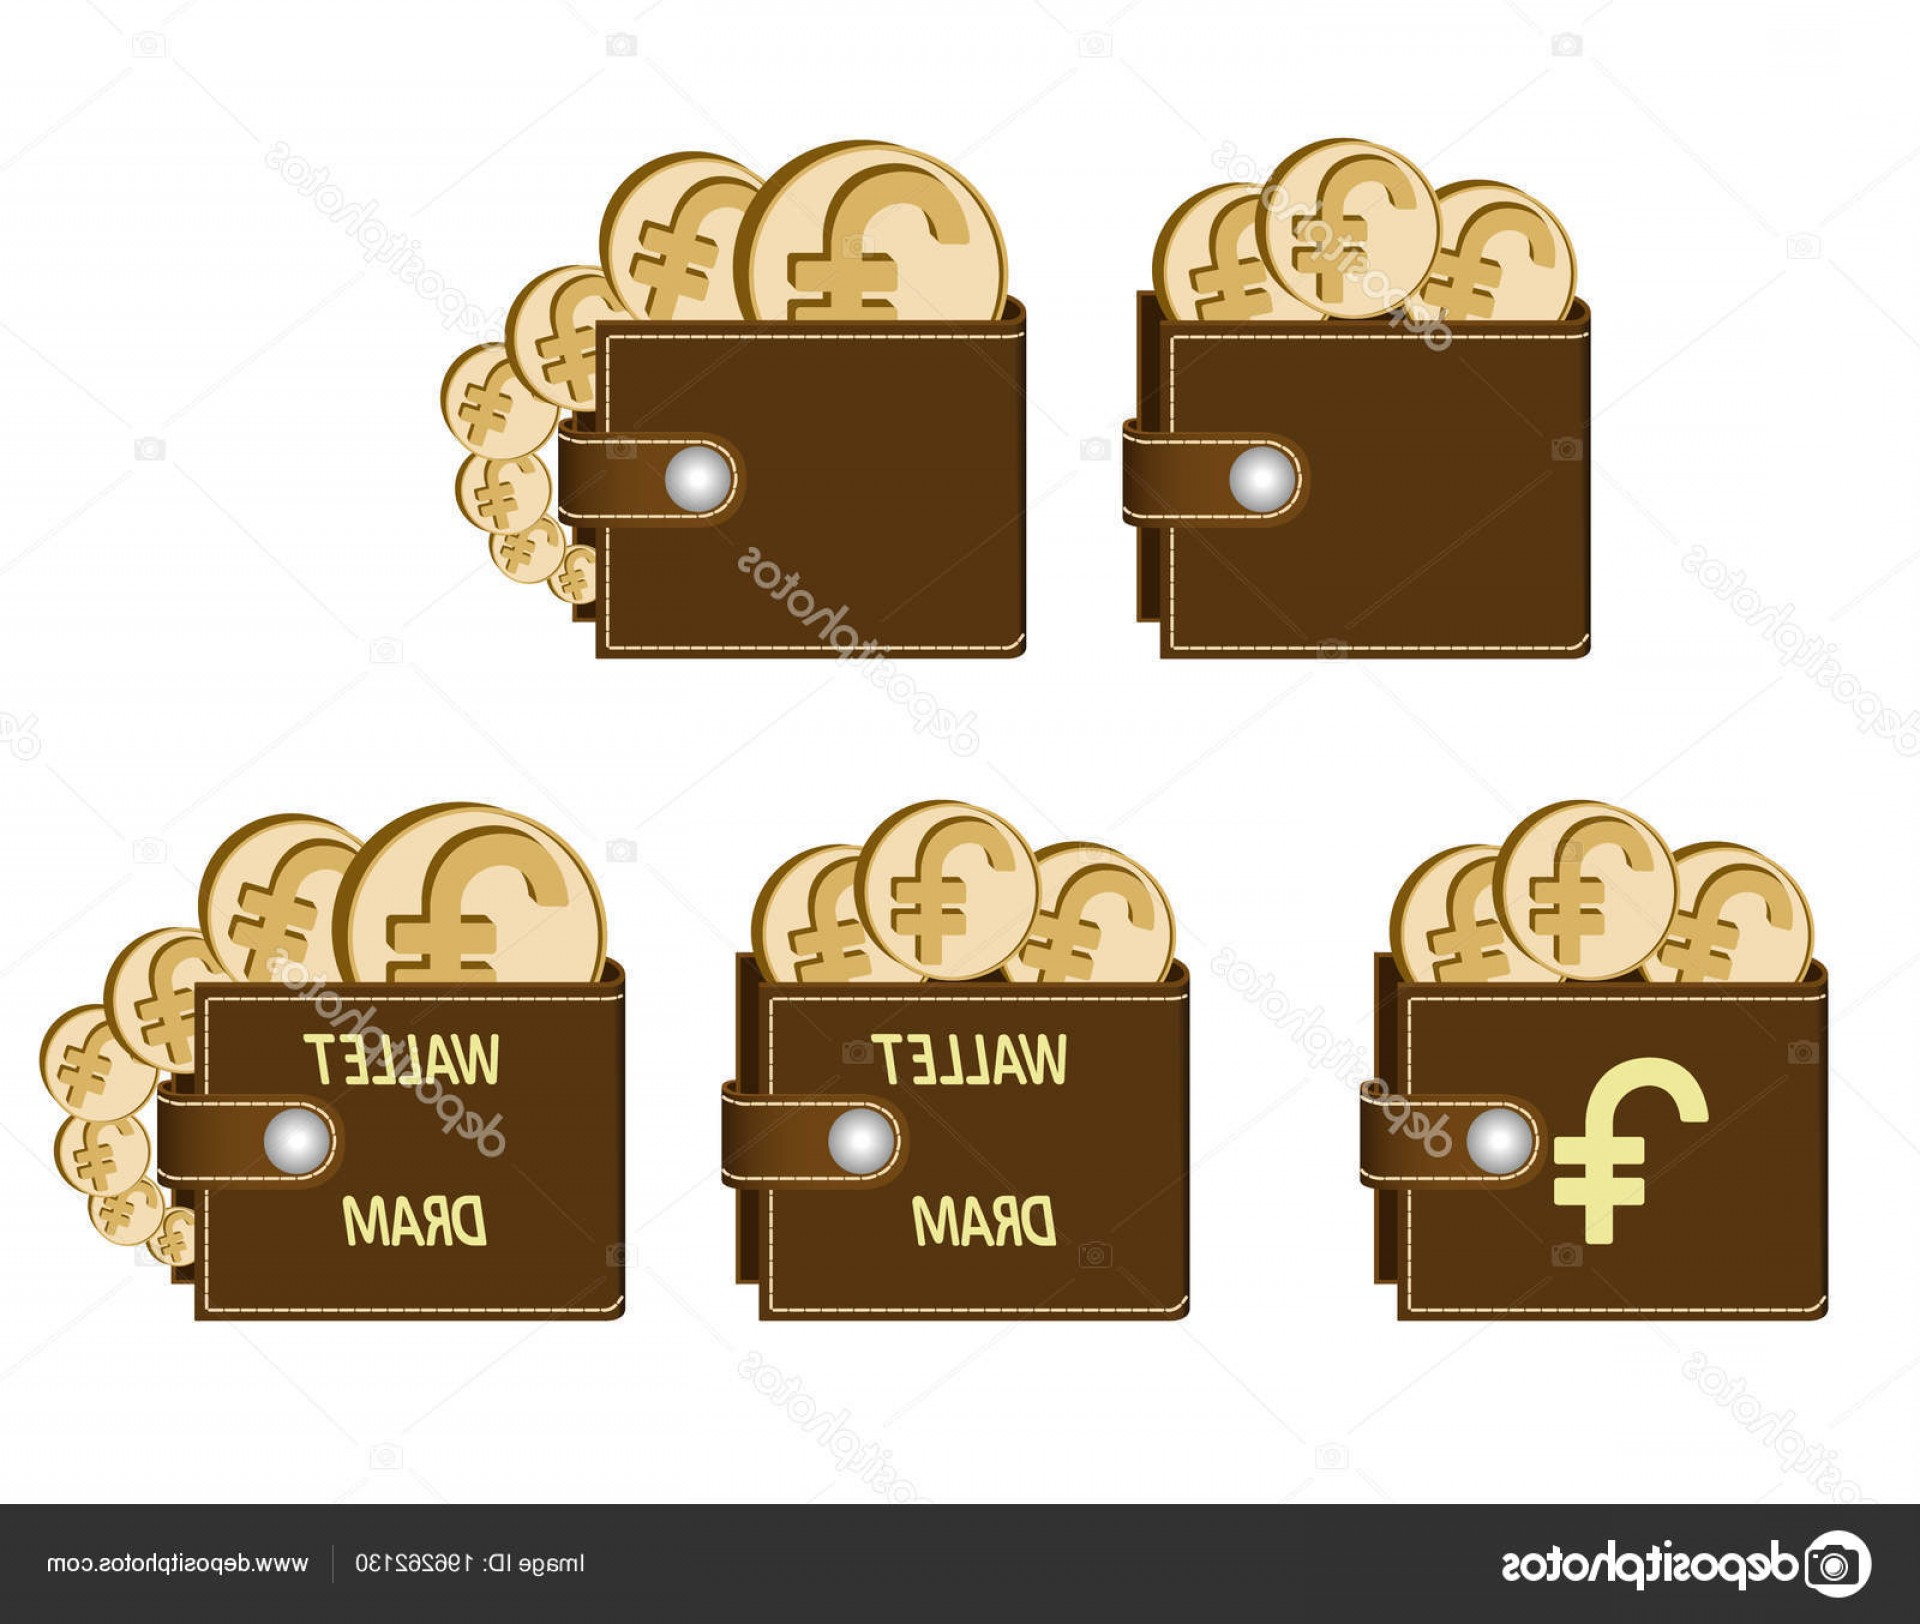 BBB Logo In Vector Form: Stock Illustration Set Of Brown Wallets With